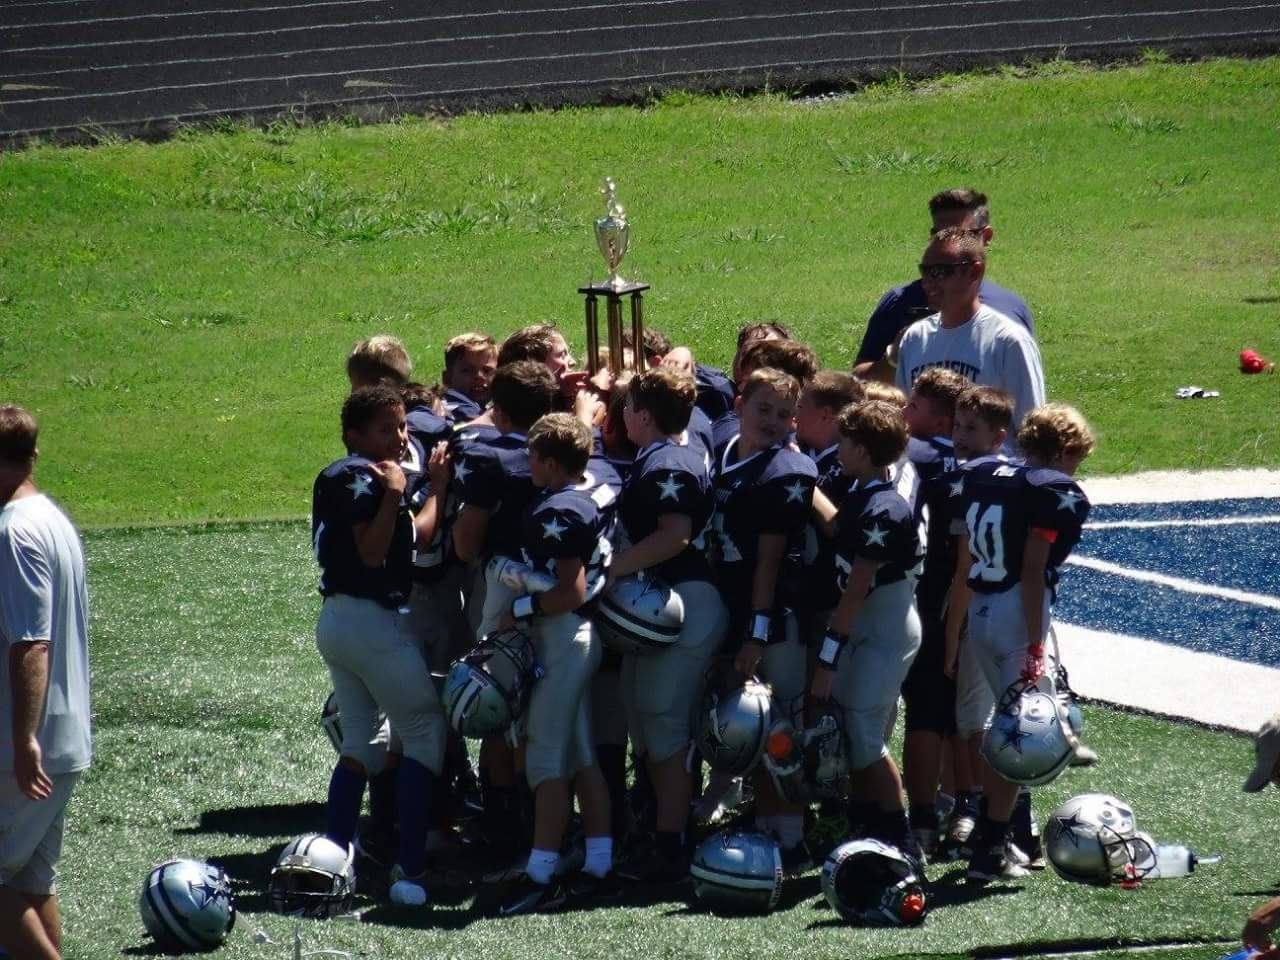 Farragut Youth Football - Farragut Admirals 9u